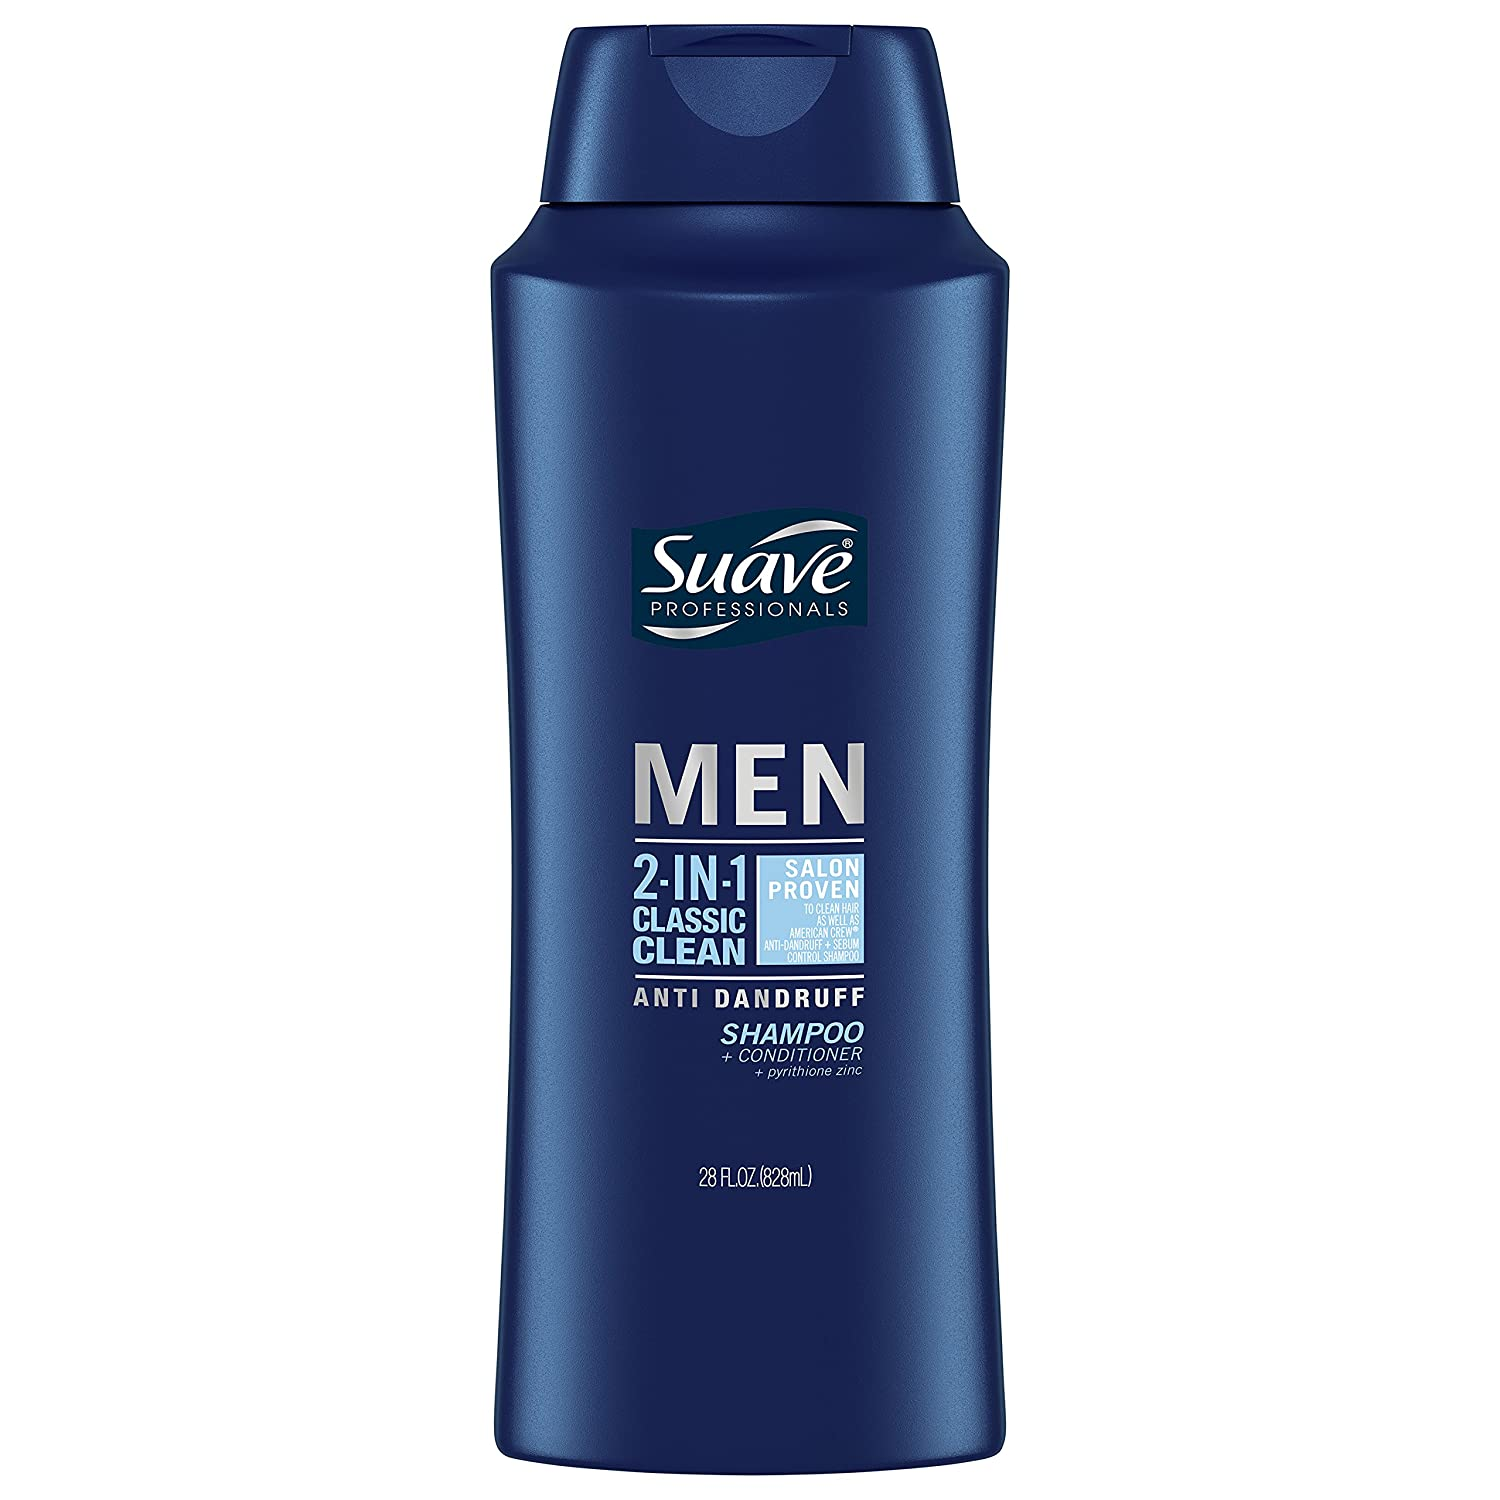 Suave Men 2in1 AntiDandruff Shampoo & Conditioner, Classic Clean, 28 oz